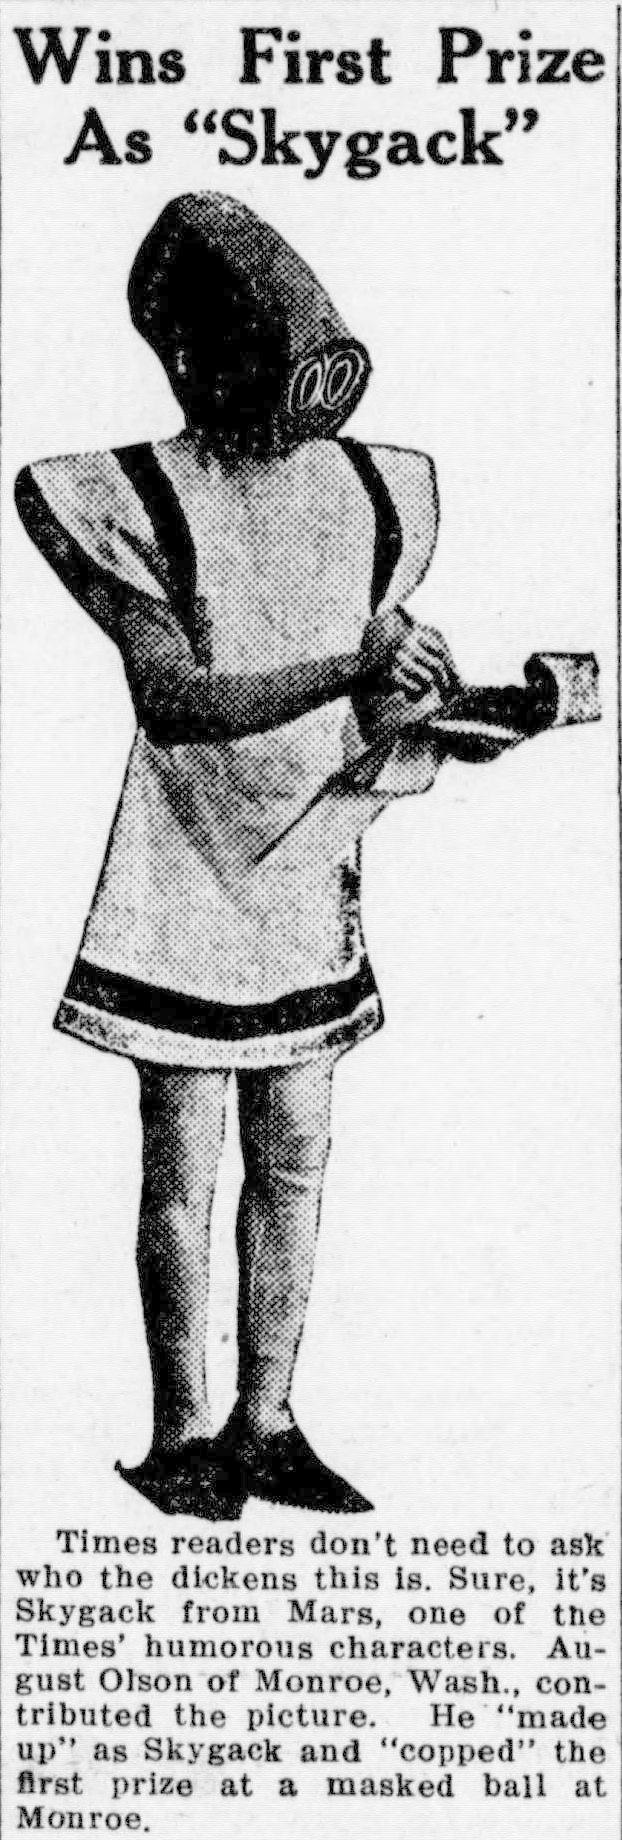 """Masquerade attendee dressed as """"Mister Skygack, from Mars"""" (1912)"""